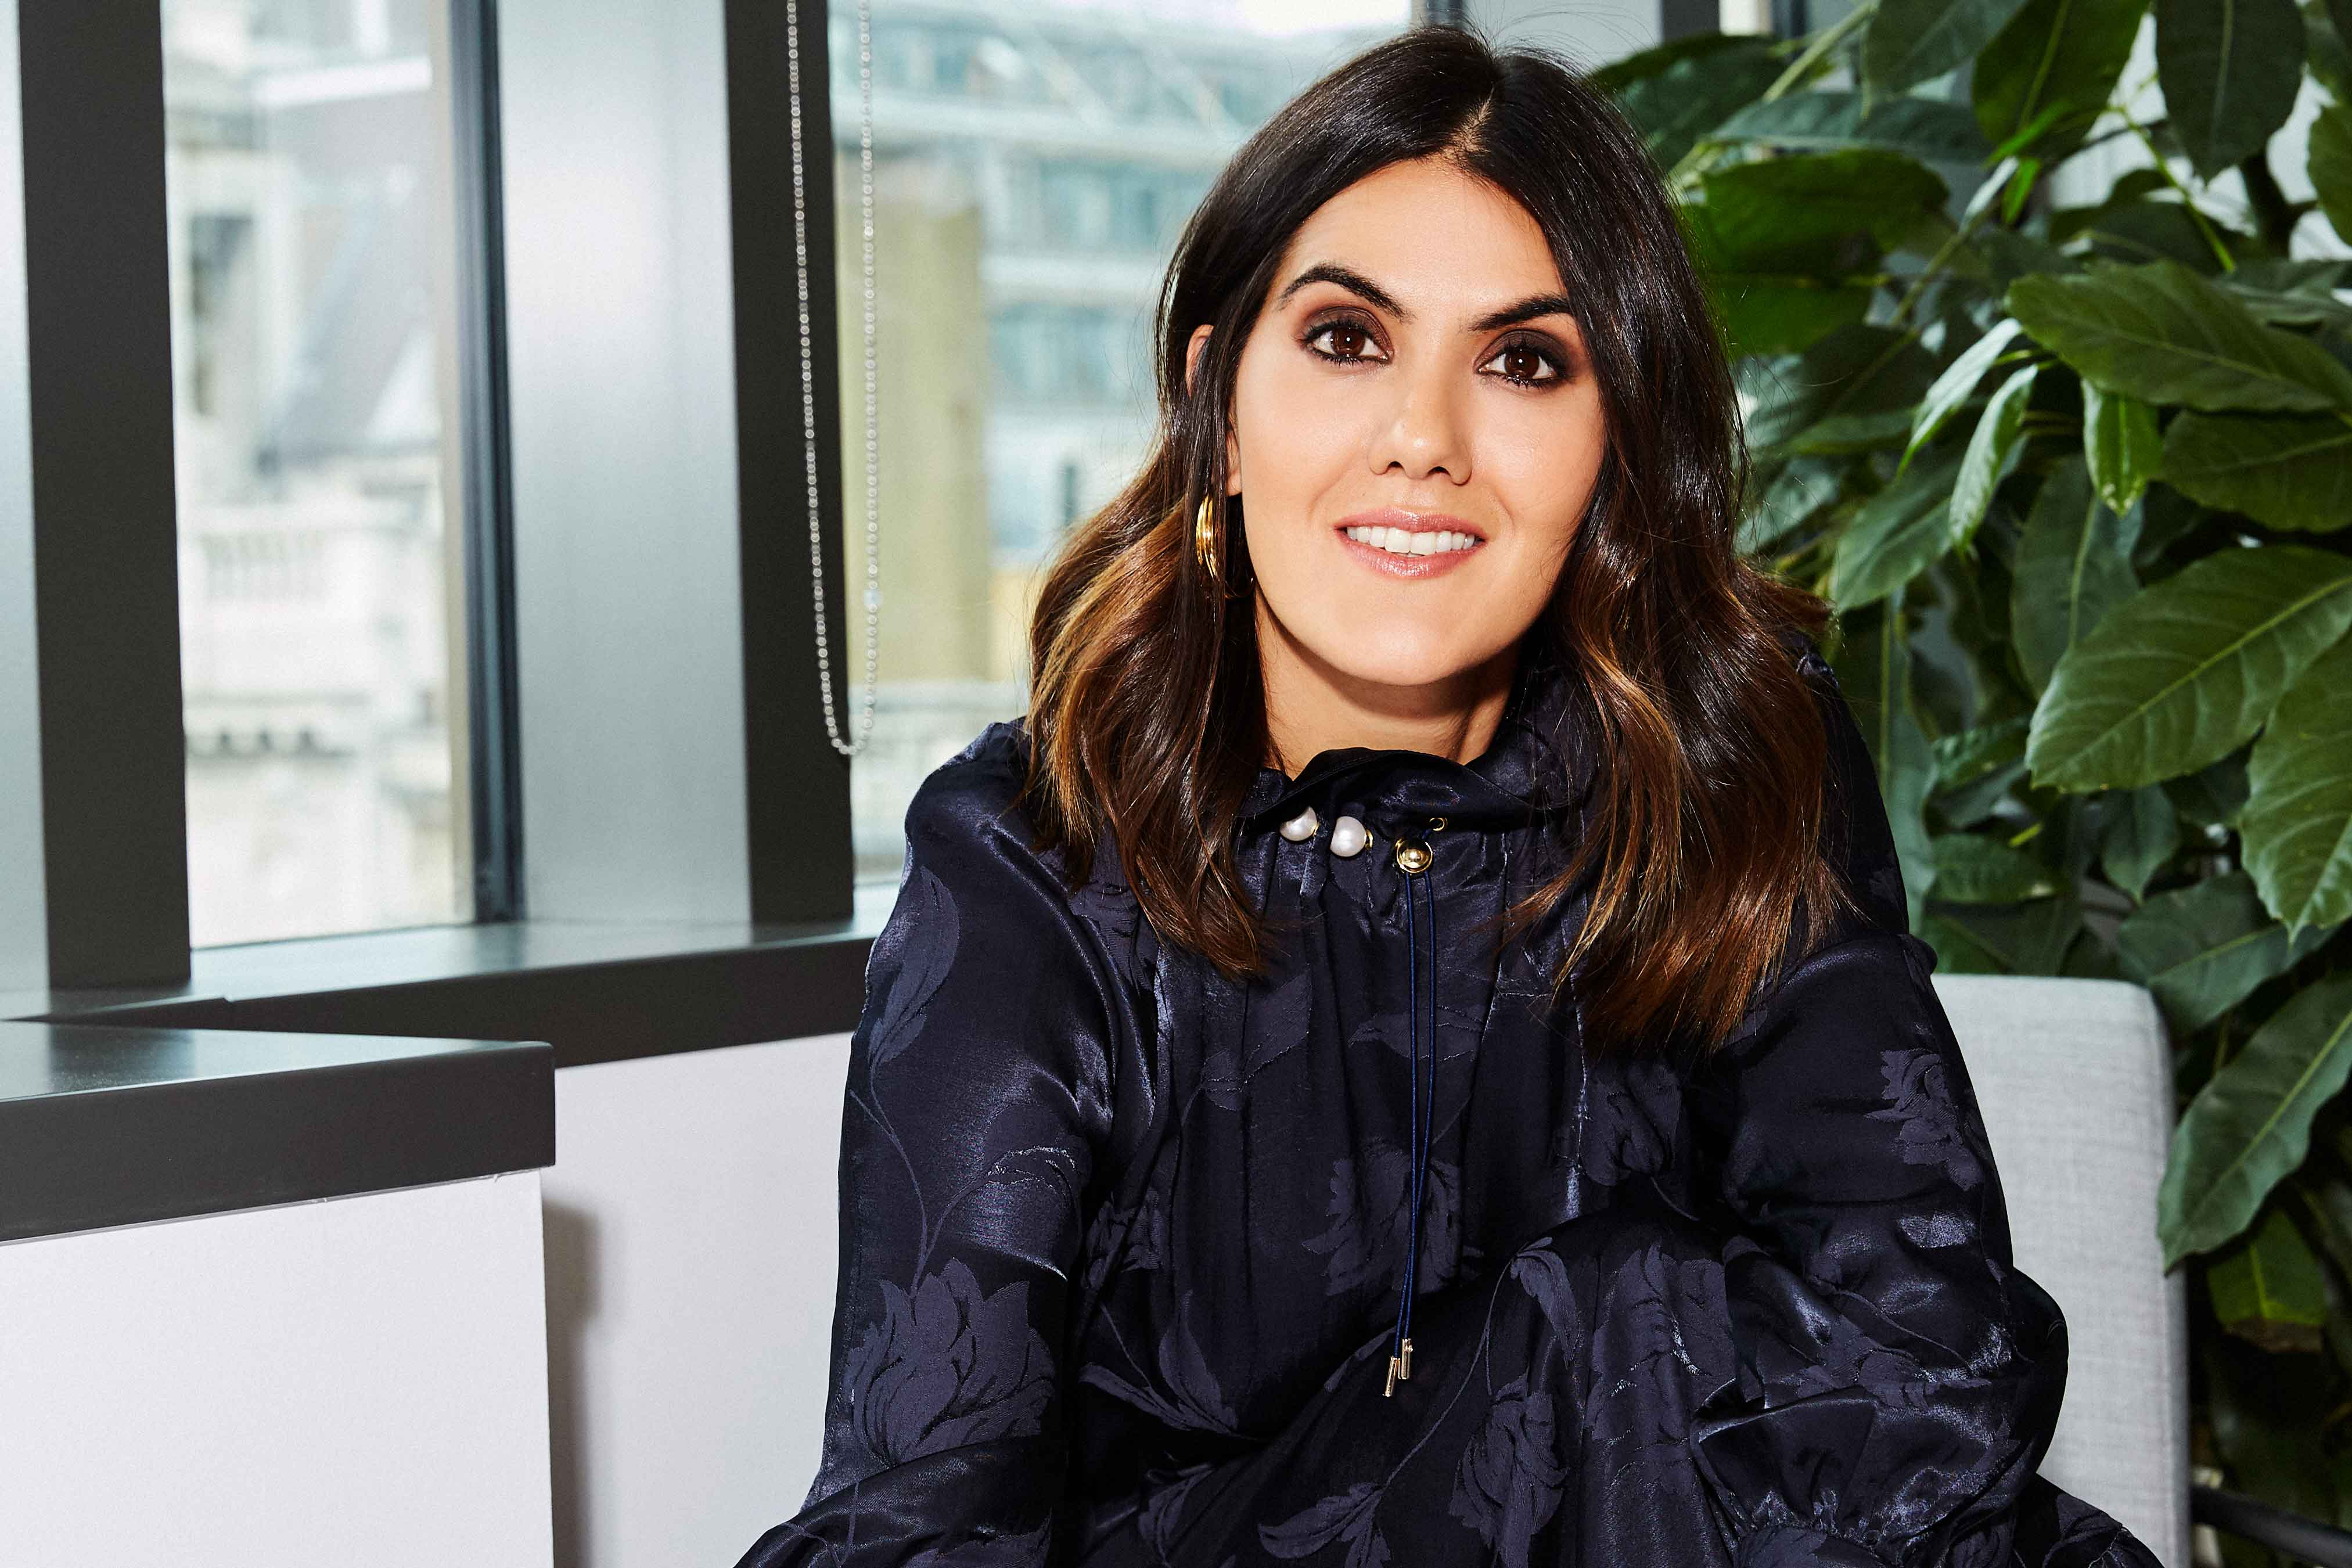 Cosmopolitan UK's Editor Farrah Storr Reveals How Our Discomfort Zones Hold The Secrets To Unlocking Our Future